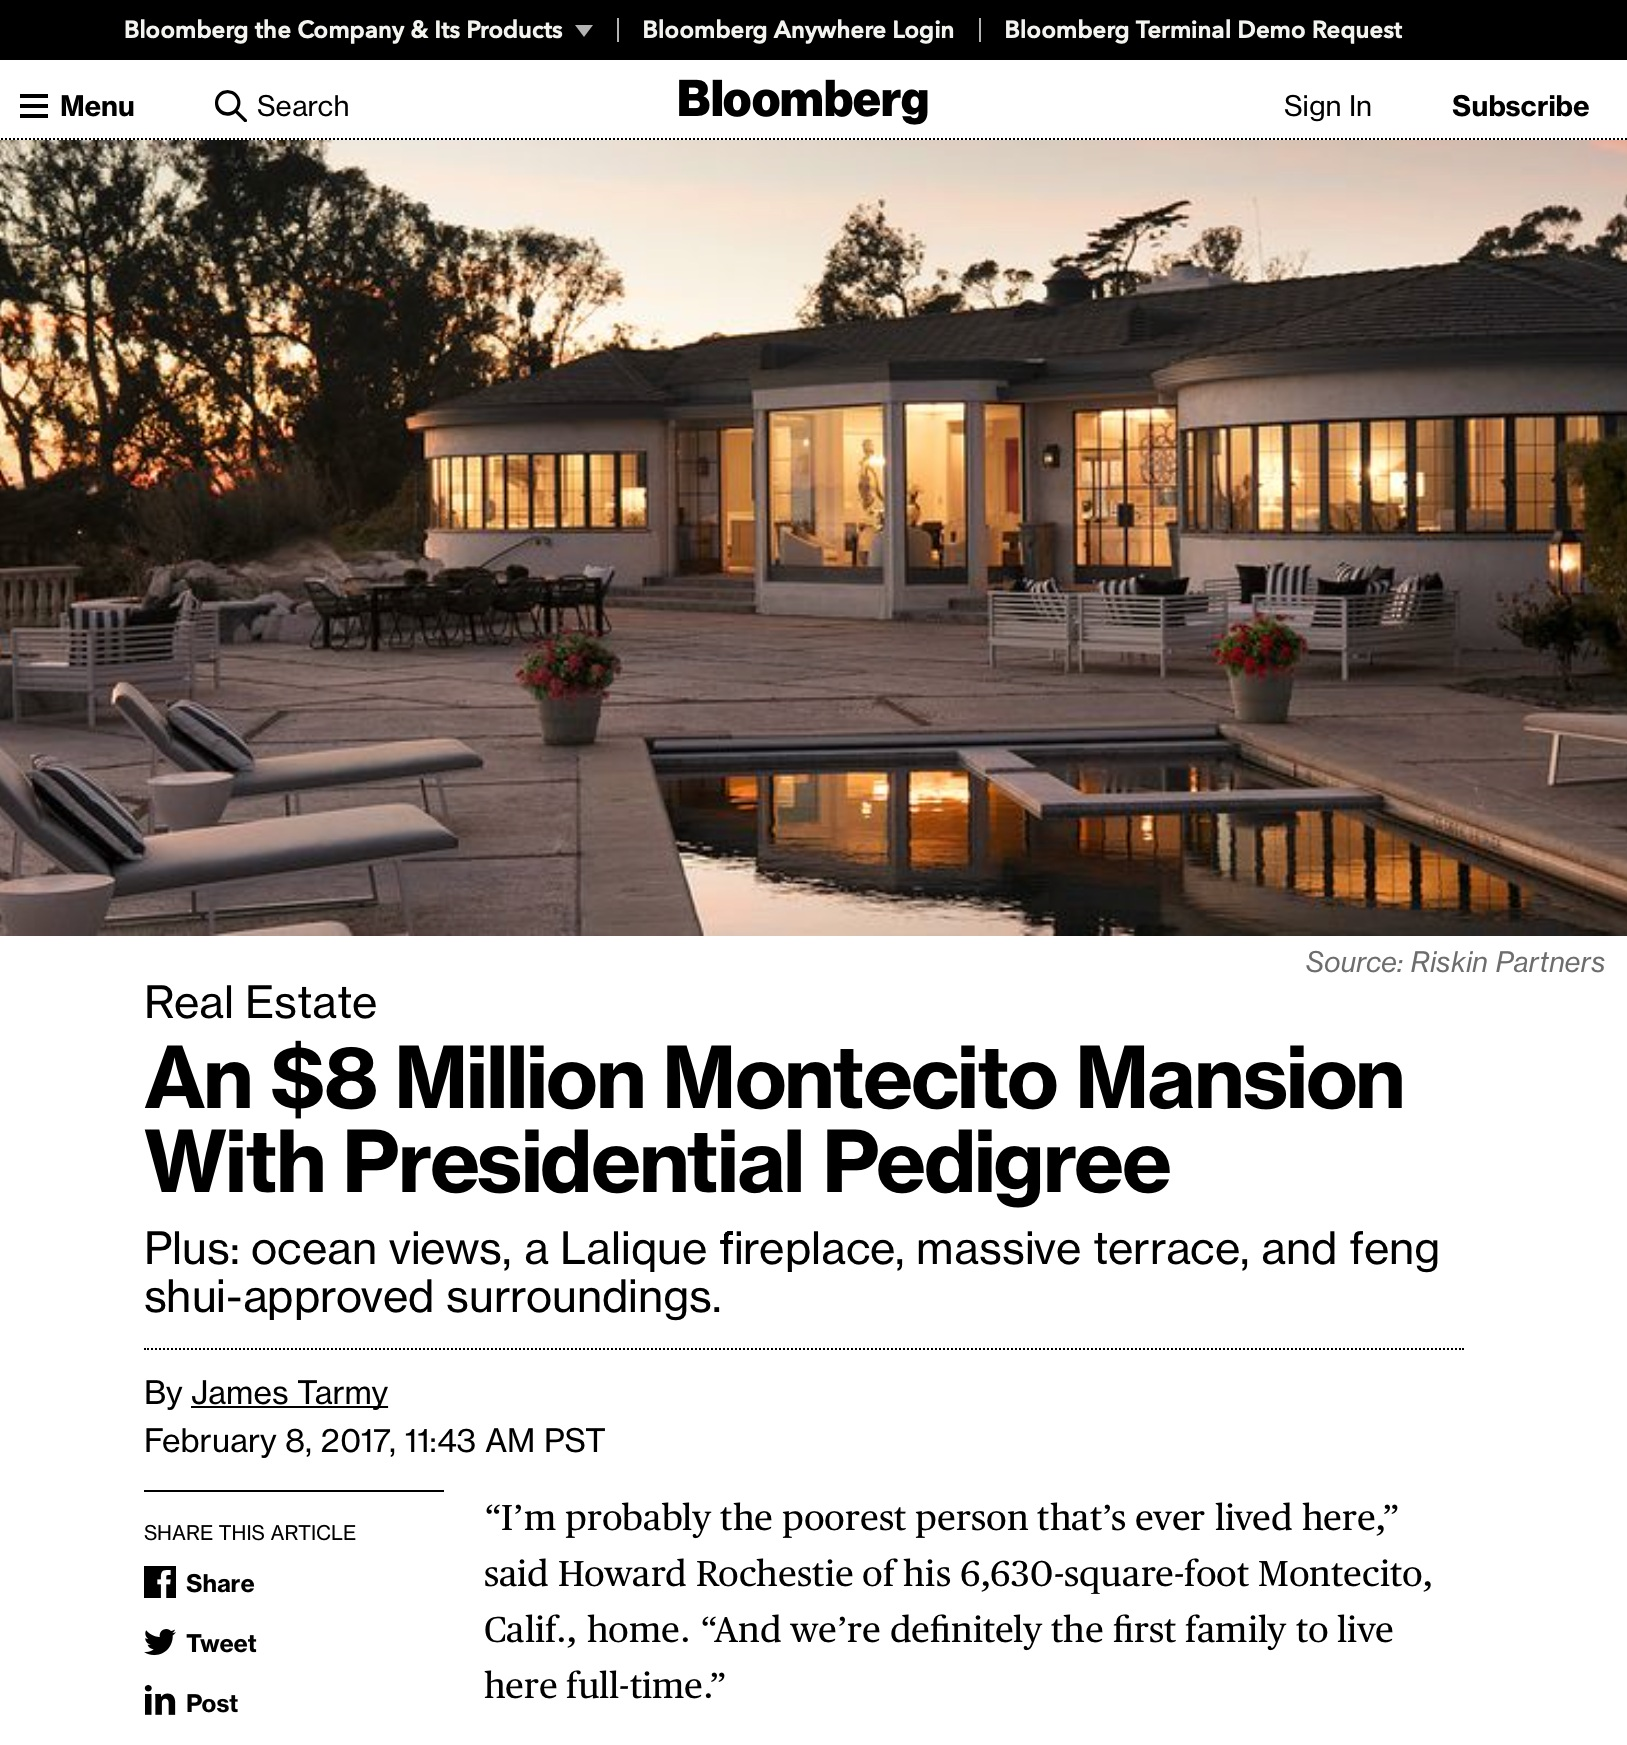 An $8 Million Montecito Mansion With Presidential Pedigree  February 8, 2017 - Bloomberg